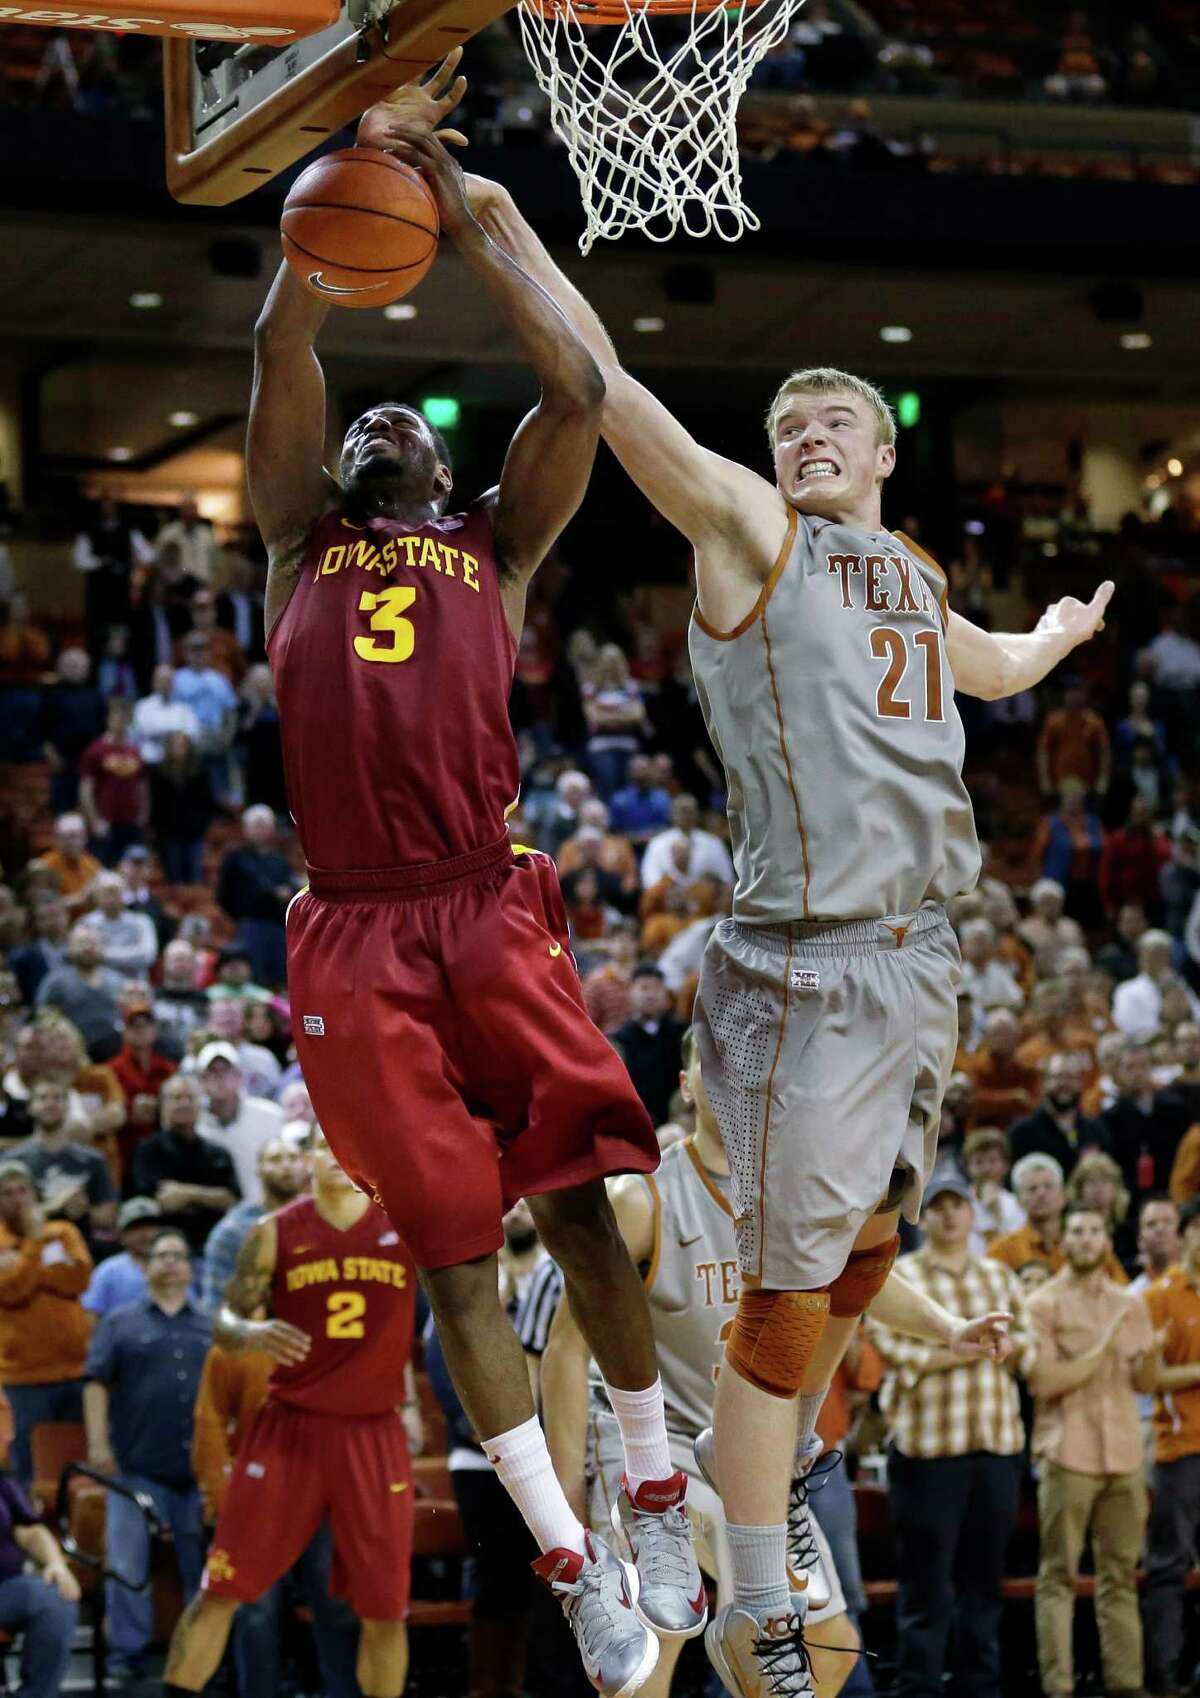 Texas' Connor Lammert (21) blocks Iowa State's Melvin Ejim (3) during overtime of an NCAA college basketball game, Wednesday, Feb. 13, 2013, in Austin, Texas. Texas won 89-86 in double overtime. (AP Photo/Eric Gay)